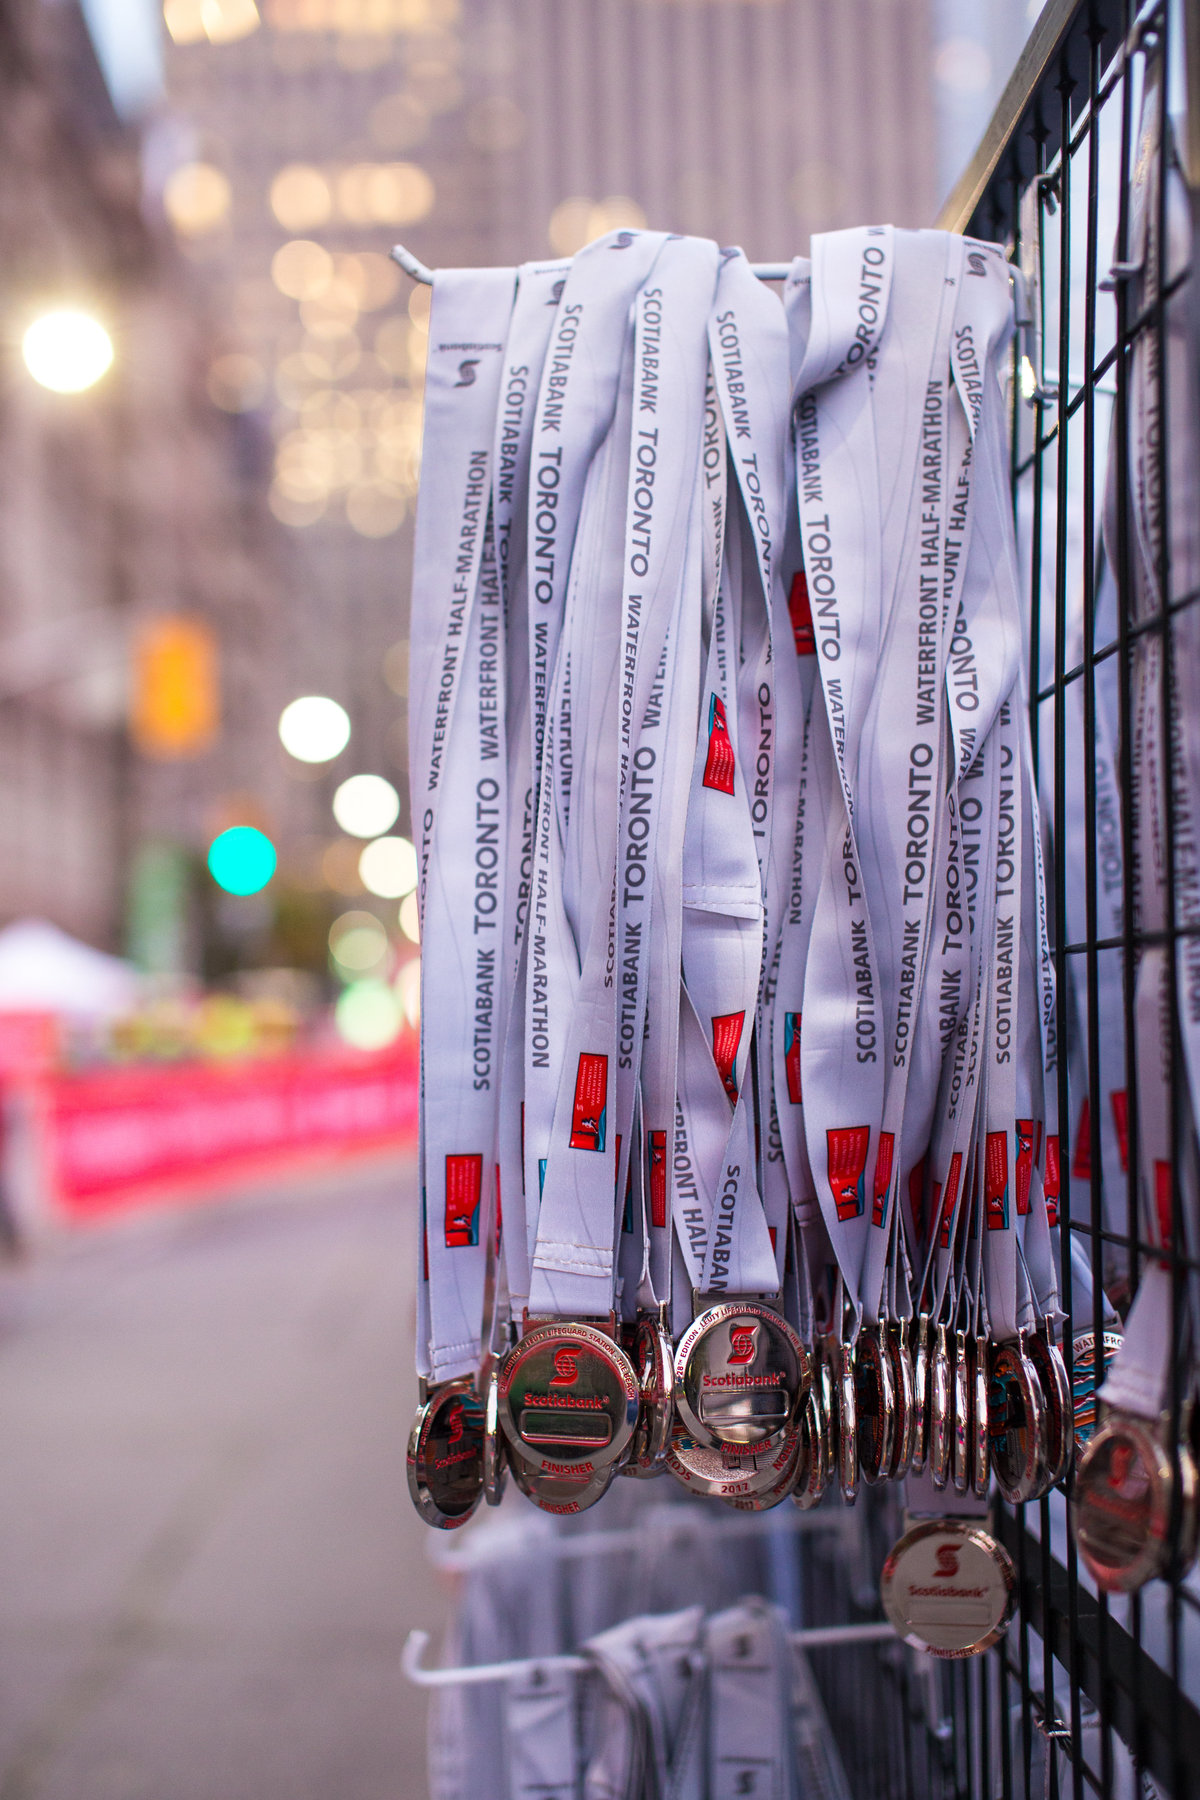 Scotiabank-Toronto-Waterfront-Marathon-Brittany-Gawley-Photography